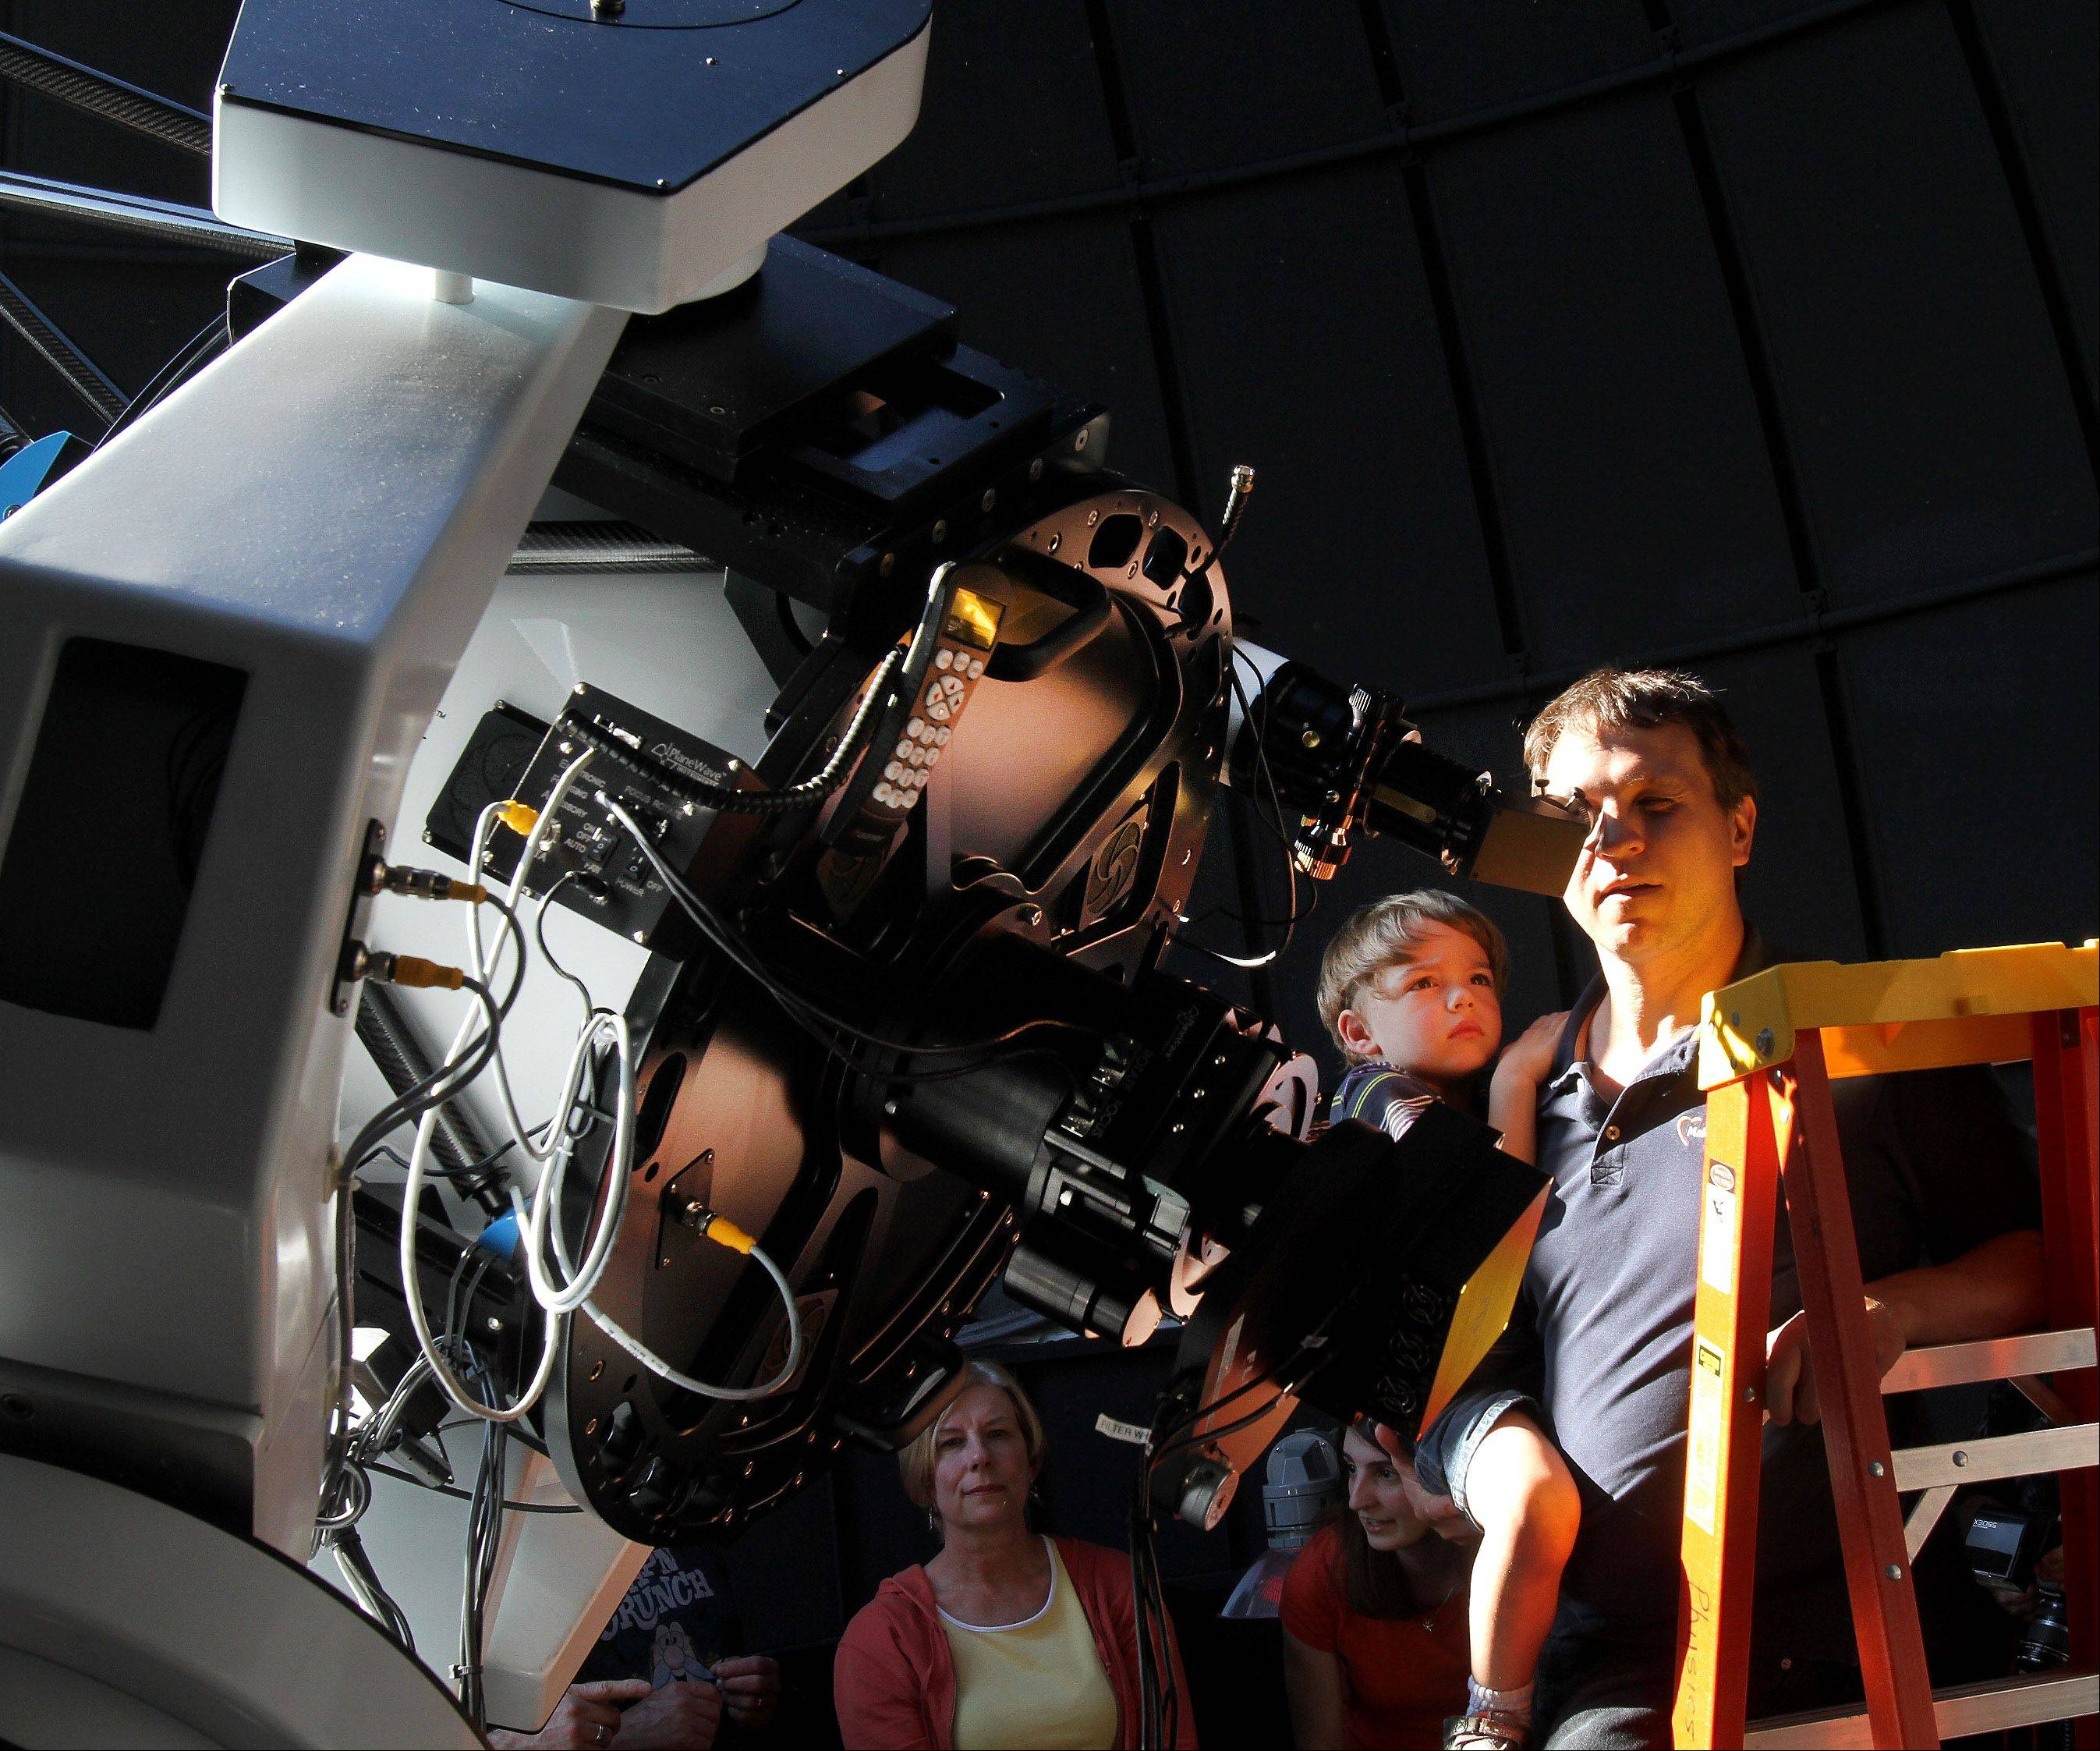 Andris Slokenbergs of Geneva and his son Emils, 3, take a look through the main telescope in the Wheaton College Astronomical Observatory, which opened Tuesday evening for free viewings of the Transit of Venus.